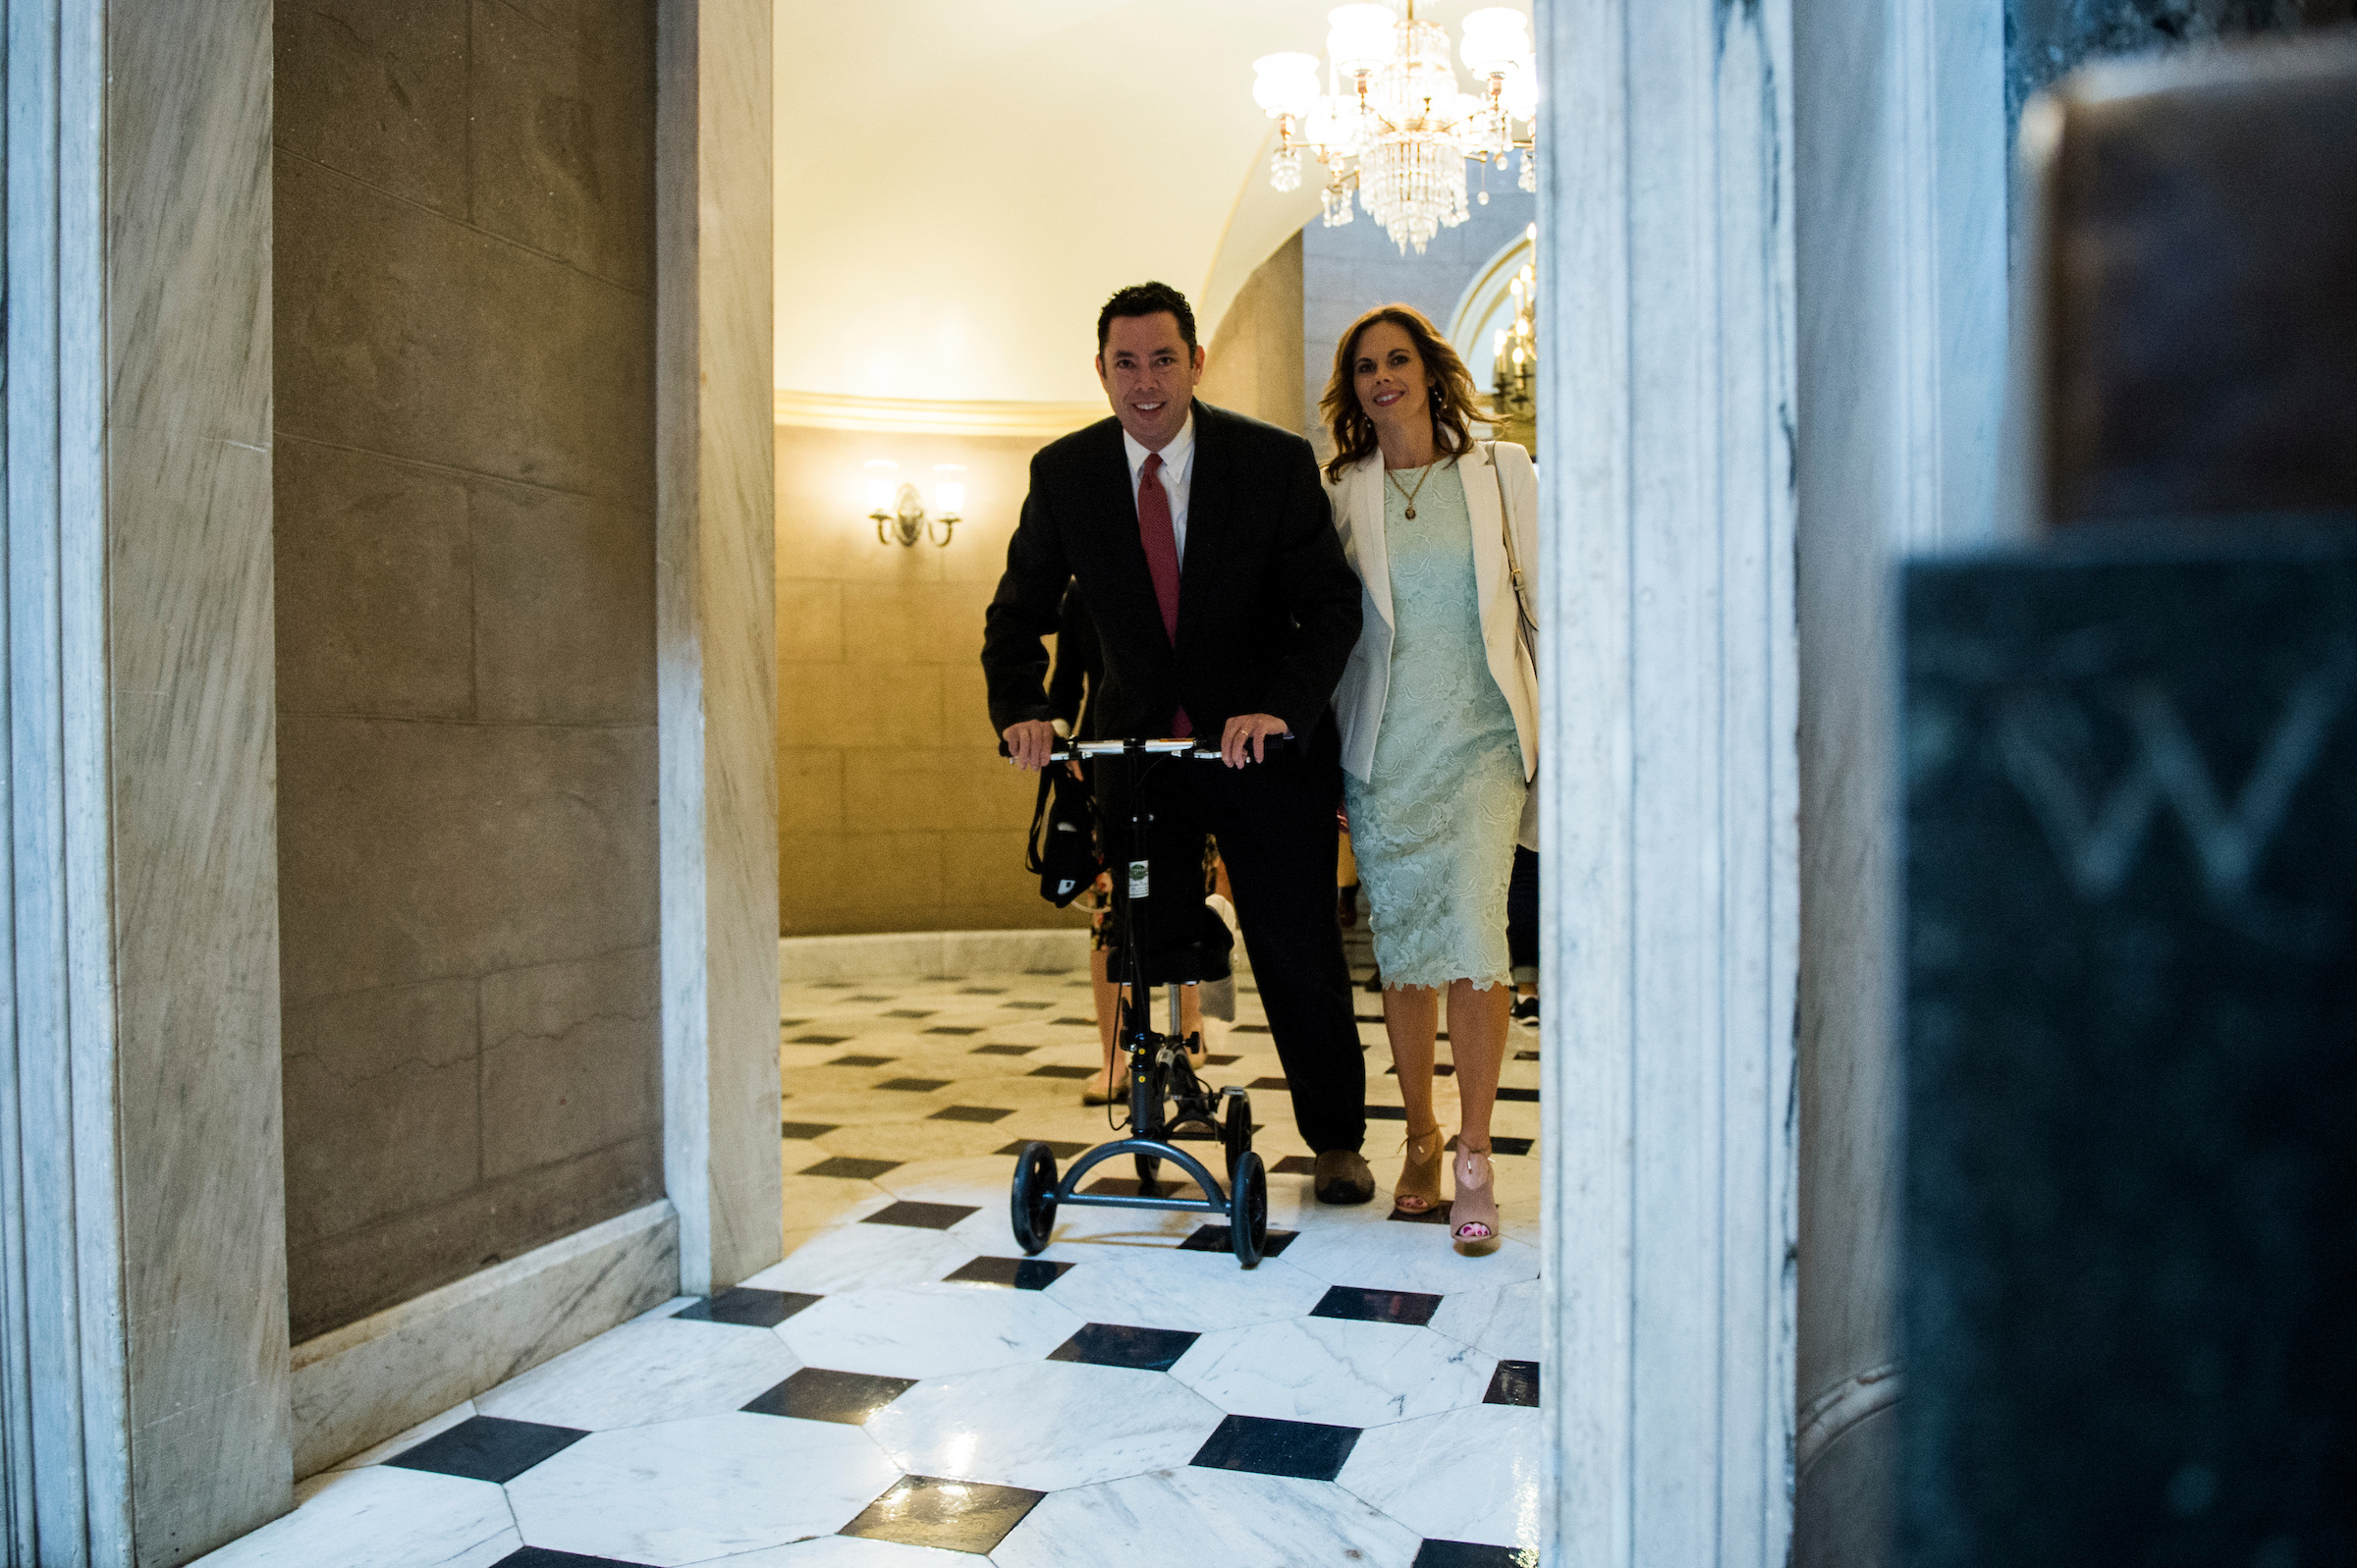 UNITED STATES - MAY 4: Rep. Jason Chaffetz, R-Utah, fresh off foot surgery, makes his way through Statuary Hall on his way to the House floor in the Capitol for the vote on repeal and replace of Obamacare (Photo By Bill Clark/CQ Roll Call)